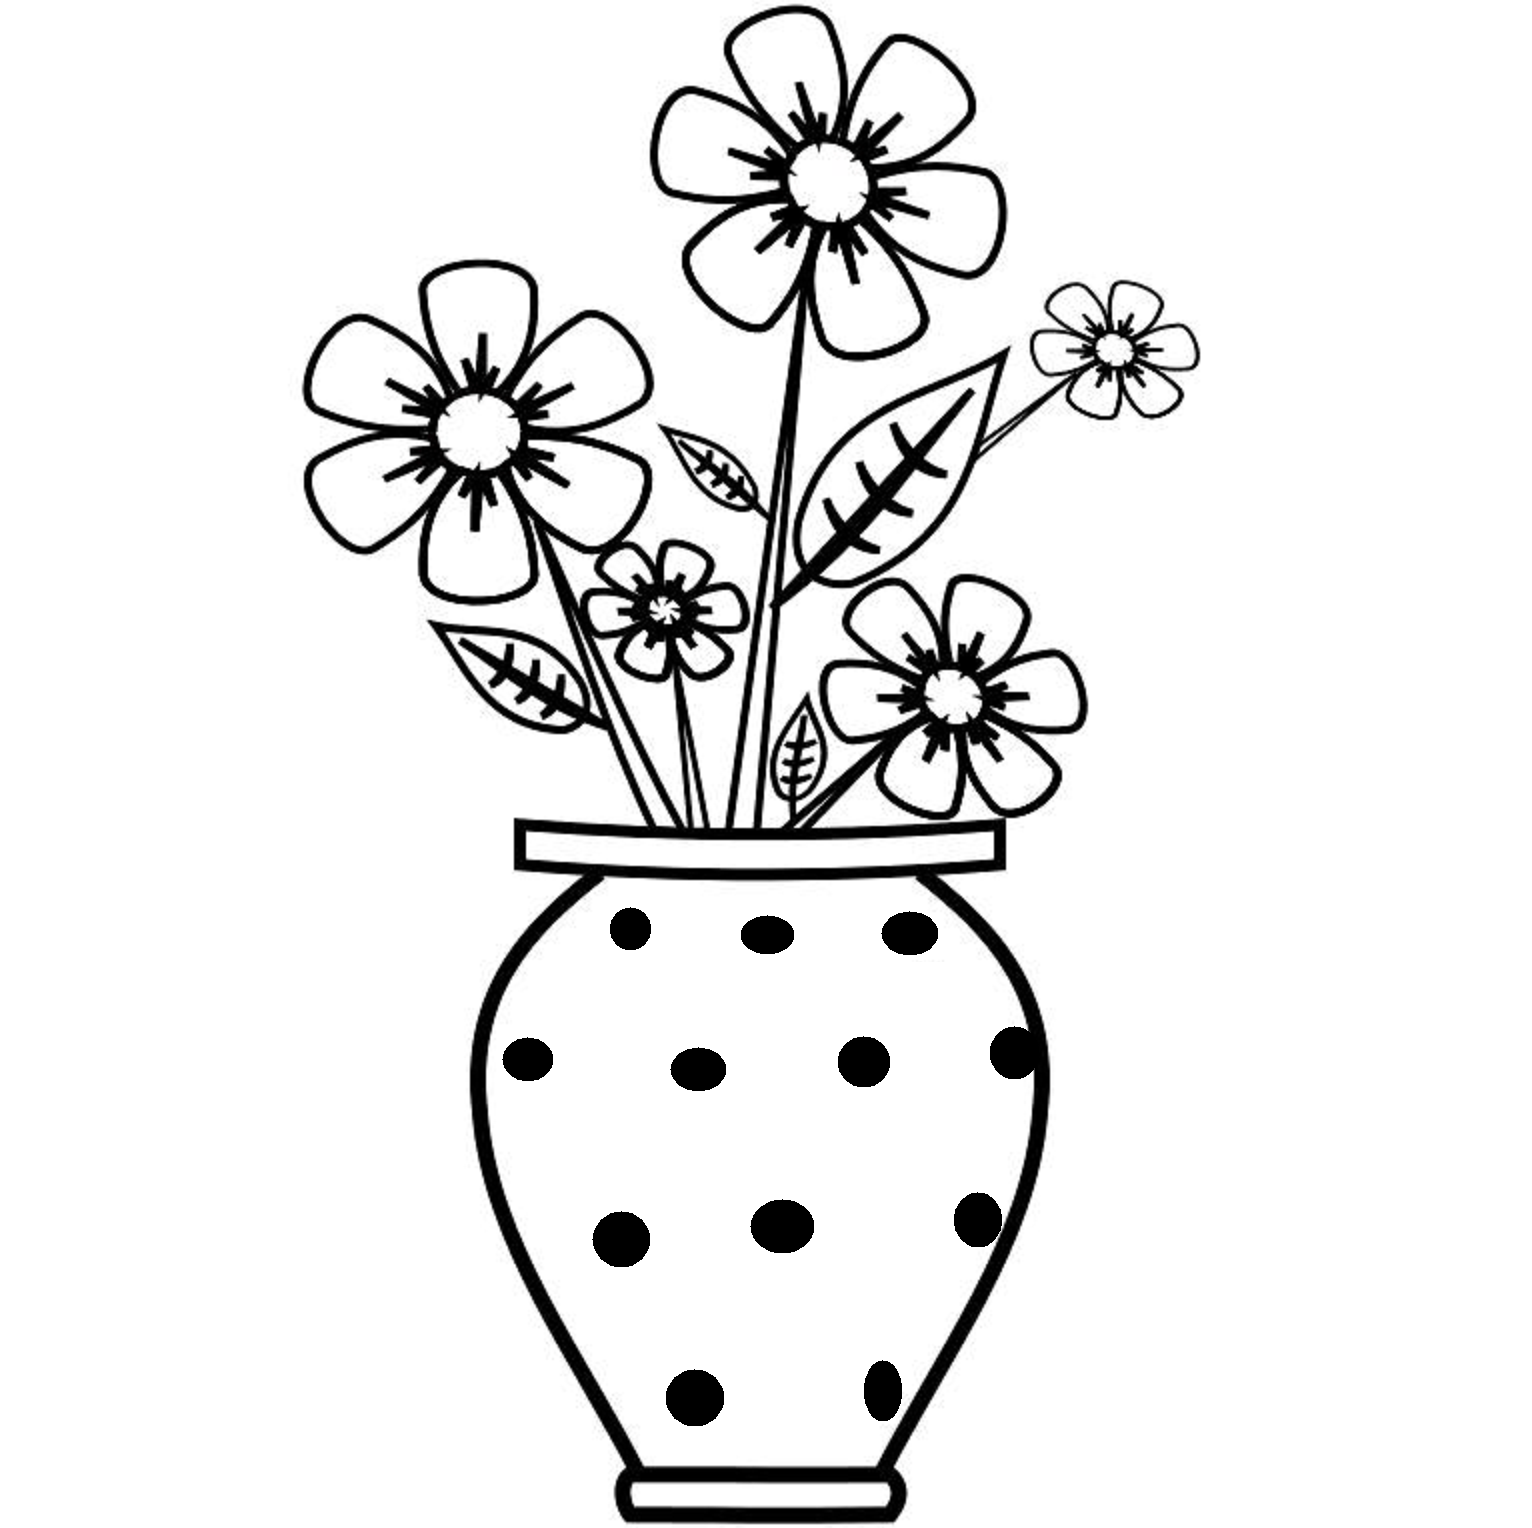 1532x1528 Flower Pot Images For Drawing Sketches Doodles